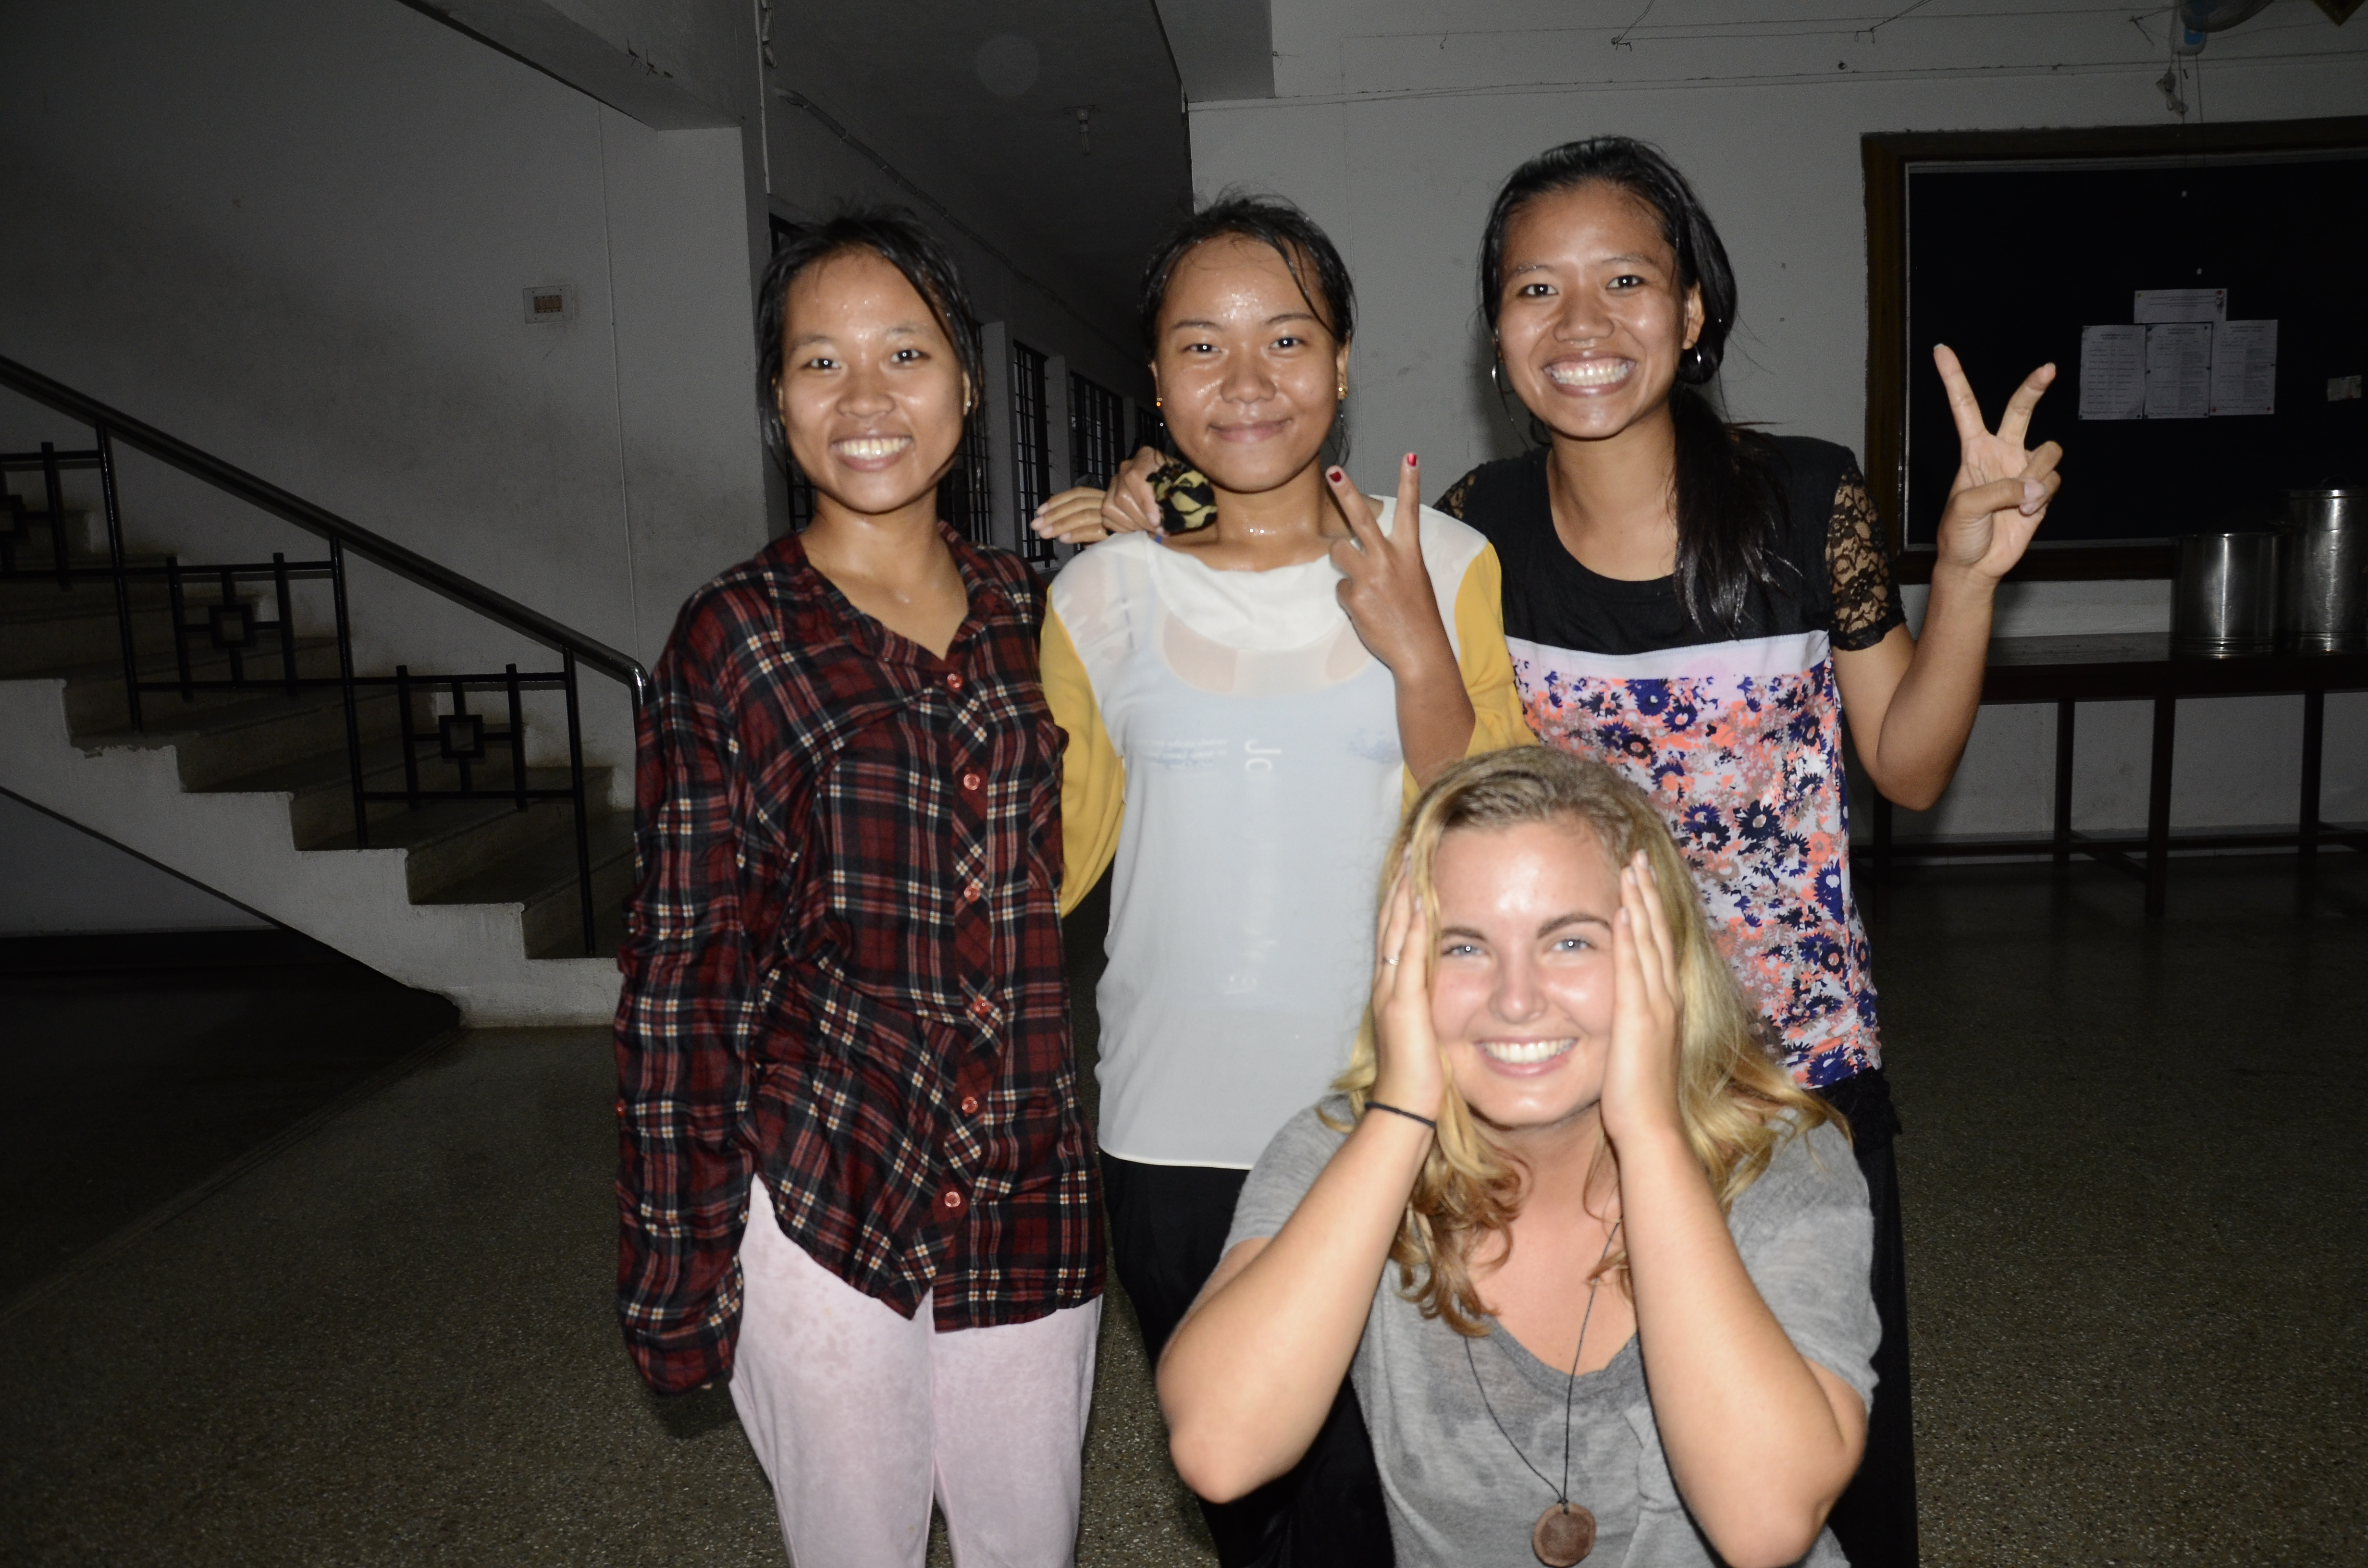 three indian girls drenched from the rain and me laughing